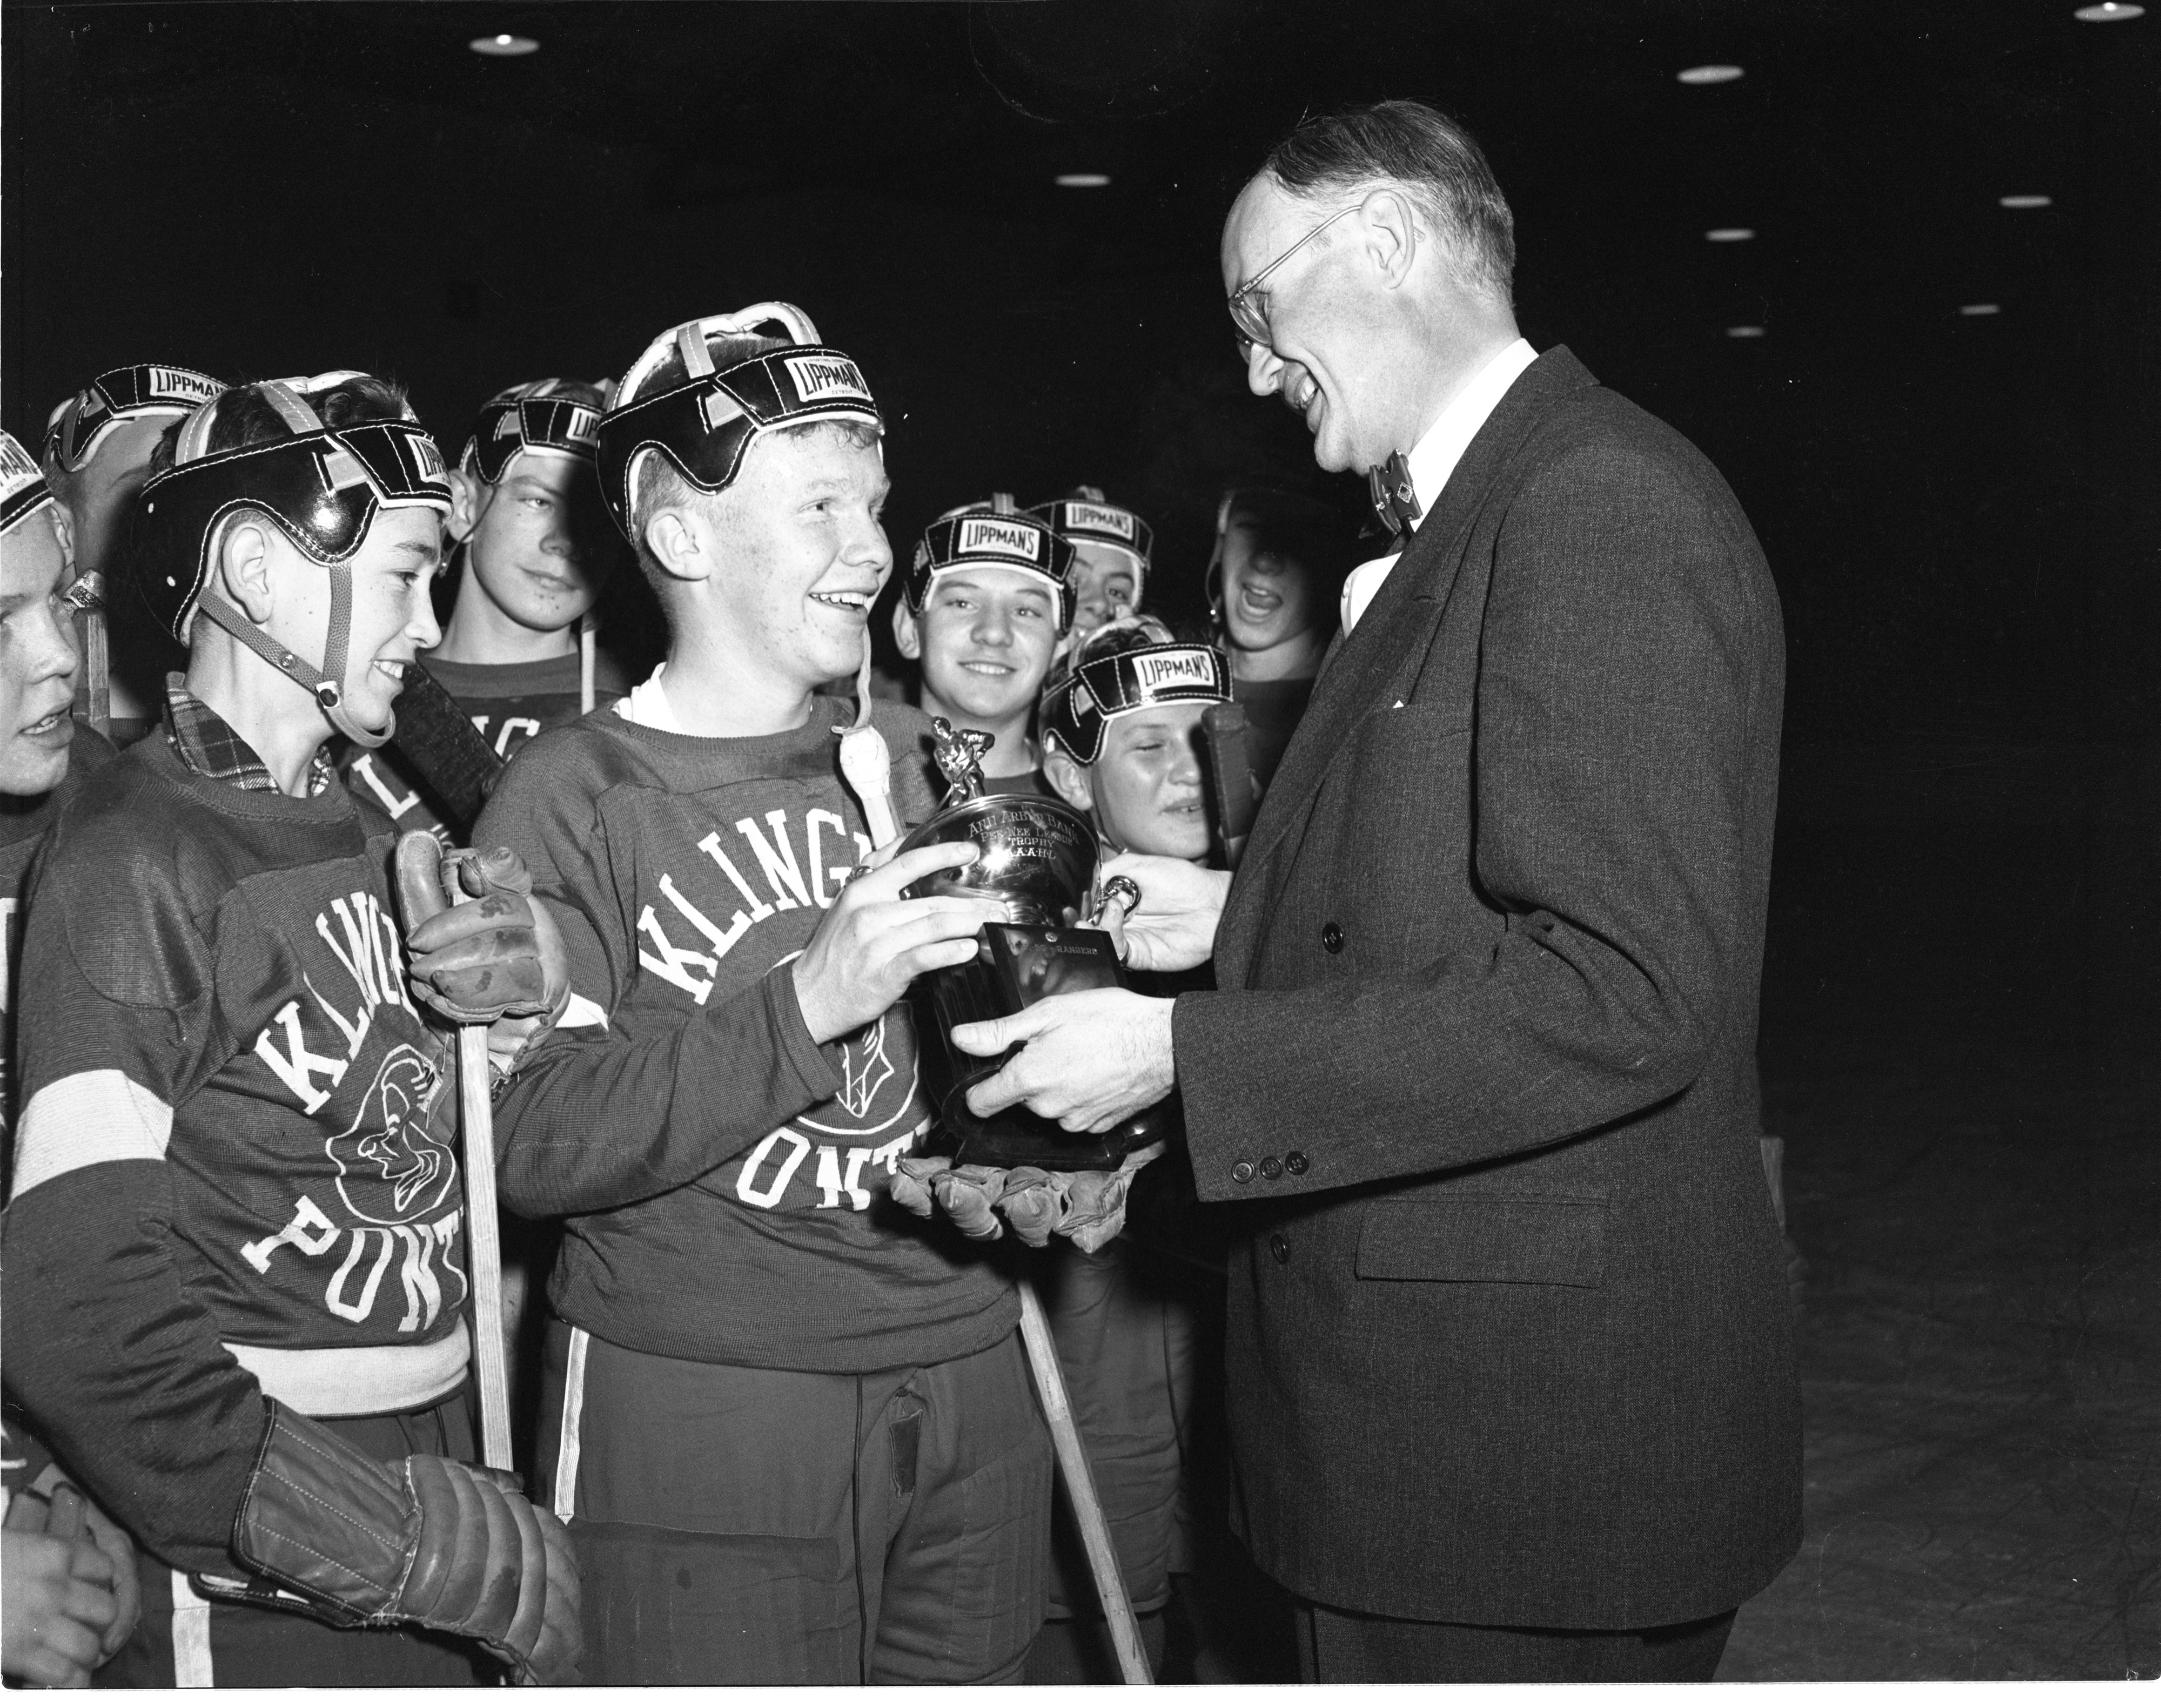 Amateur Hockey Player Dale Alexander Receives The League Championship Trophy On Behalf Of His Team, March 1953 image